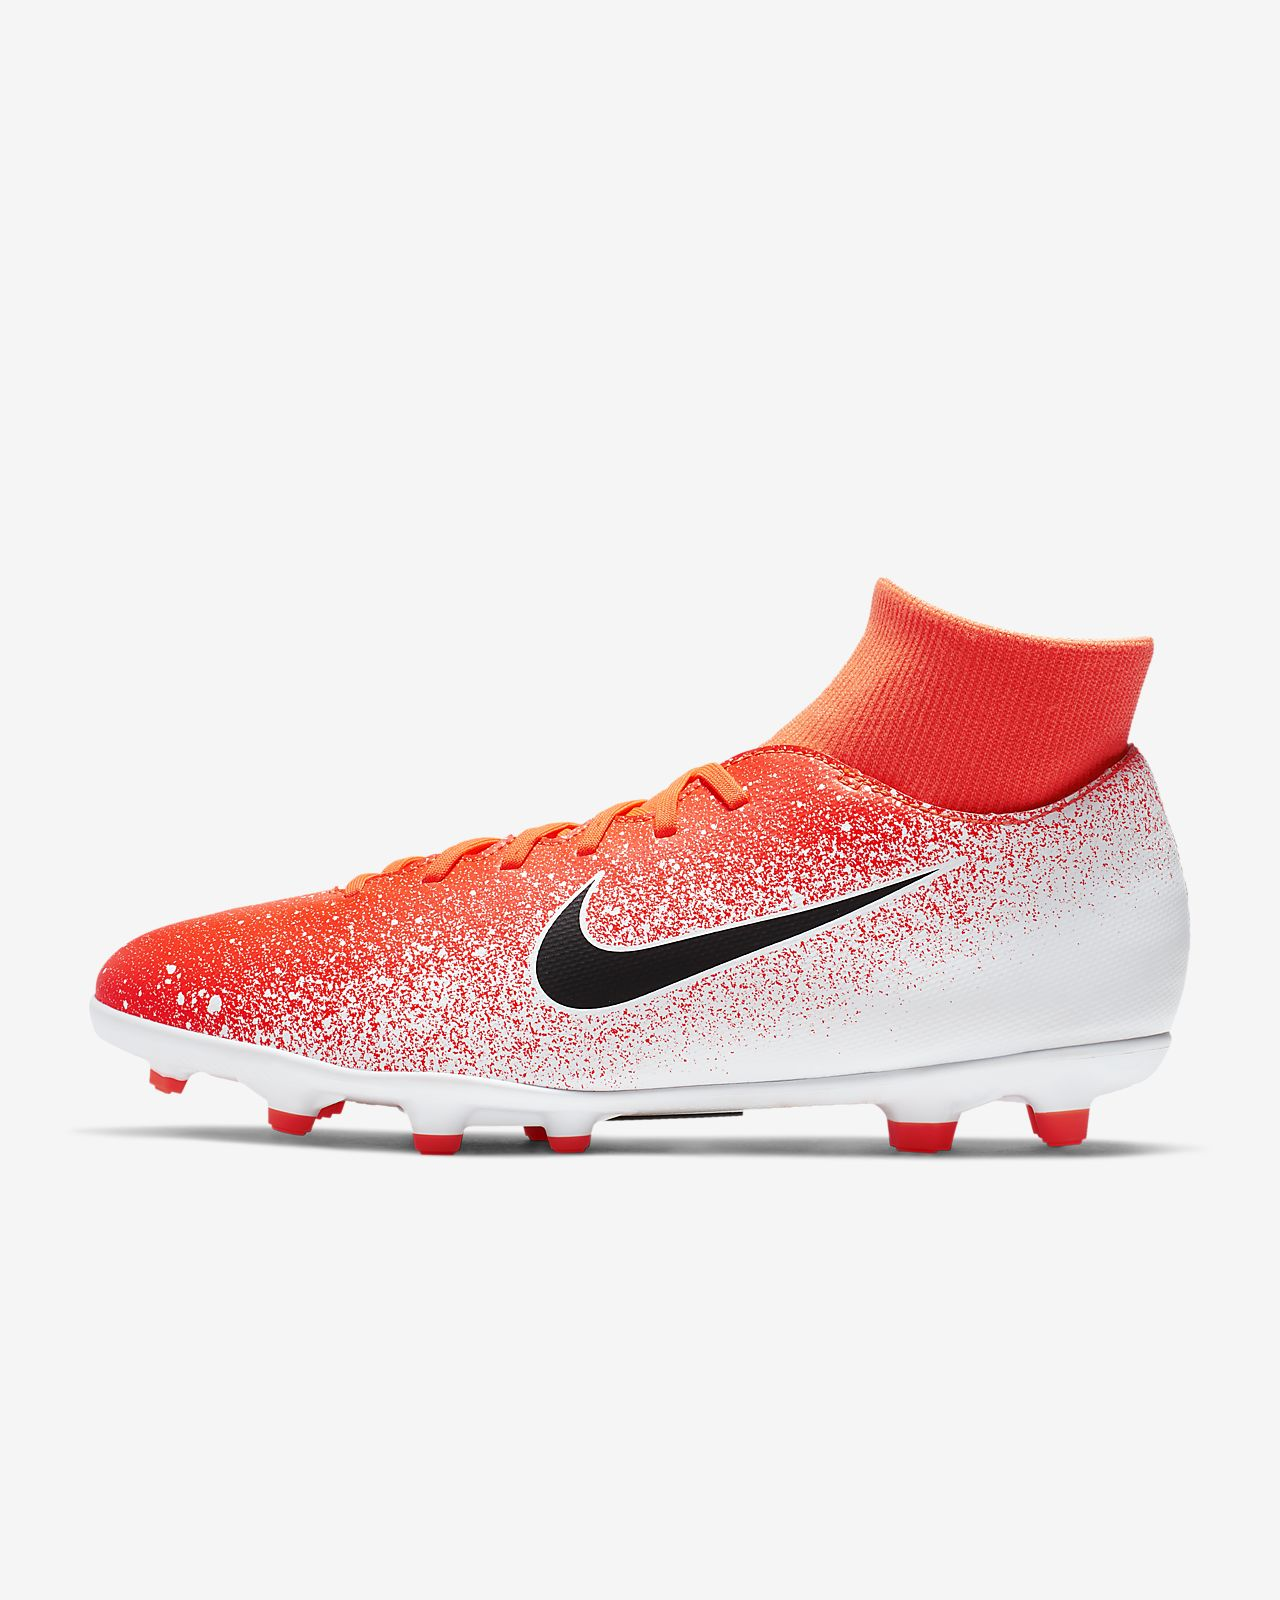 Nike Mercurial Superfly VI Club Multi-Ground Football Boot